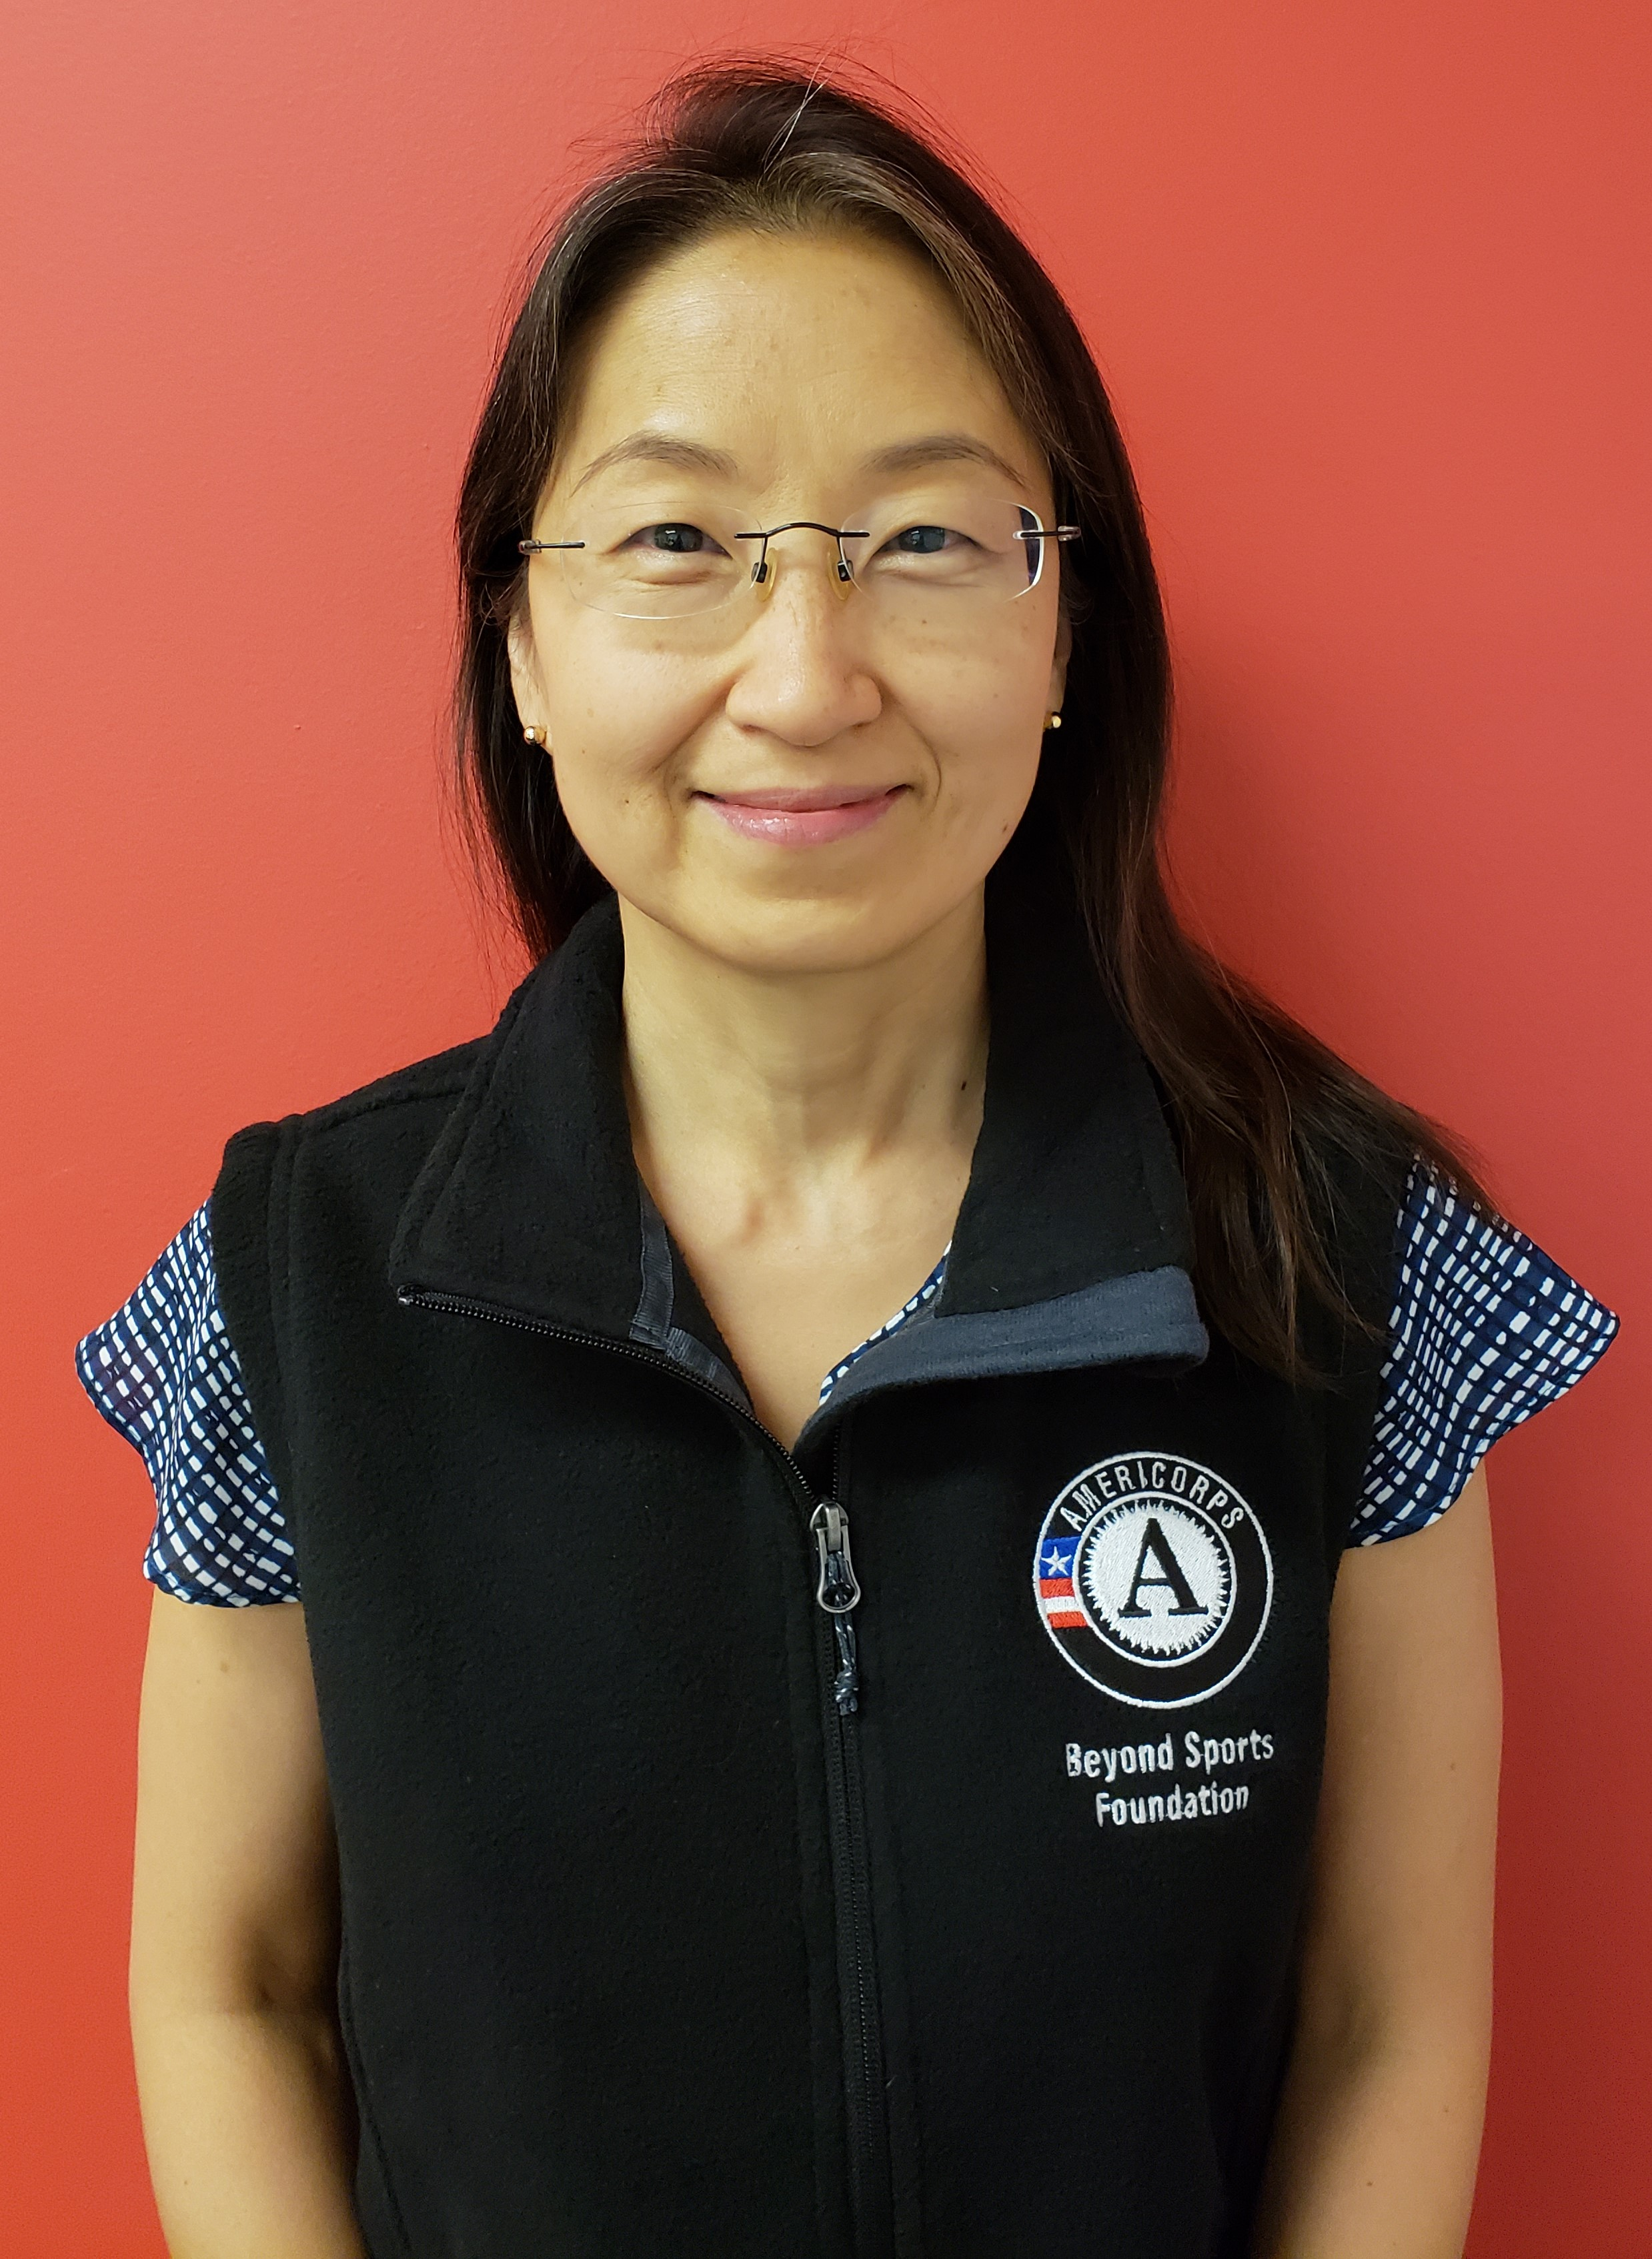 3a93302f Soung Kim has been nominated due to her passion for service at Beyond  Sports Foundation. Beyond Sports Foundation is a college access and success  program ...